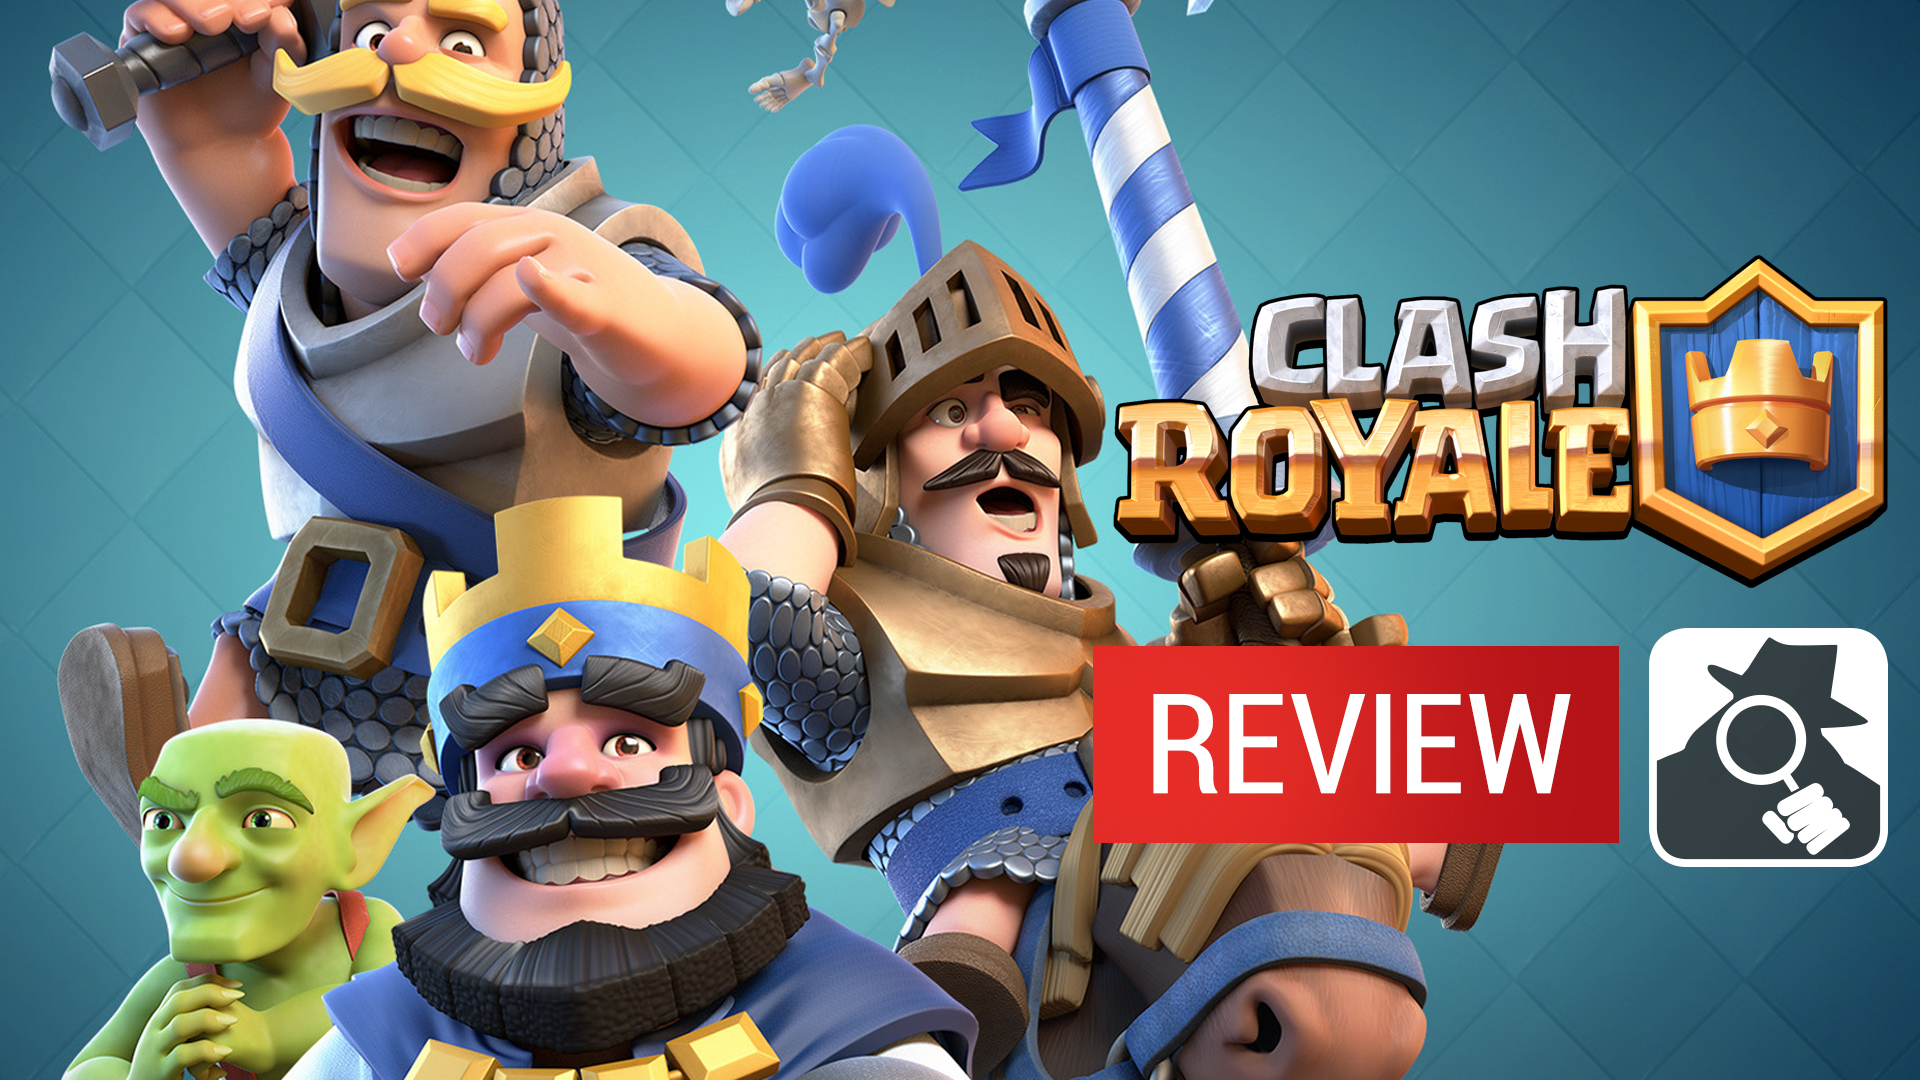 Clash Royale: Video Review